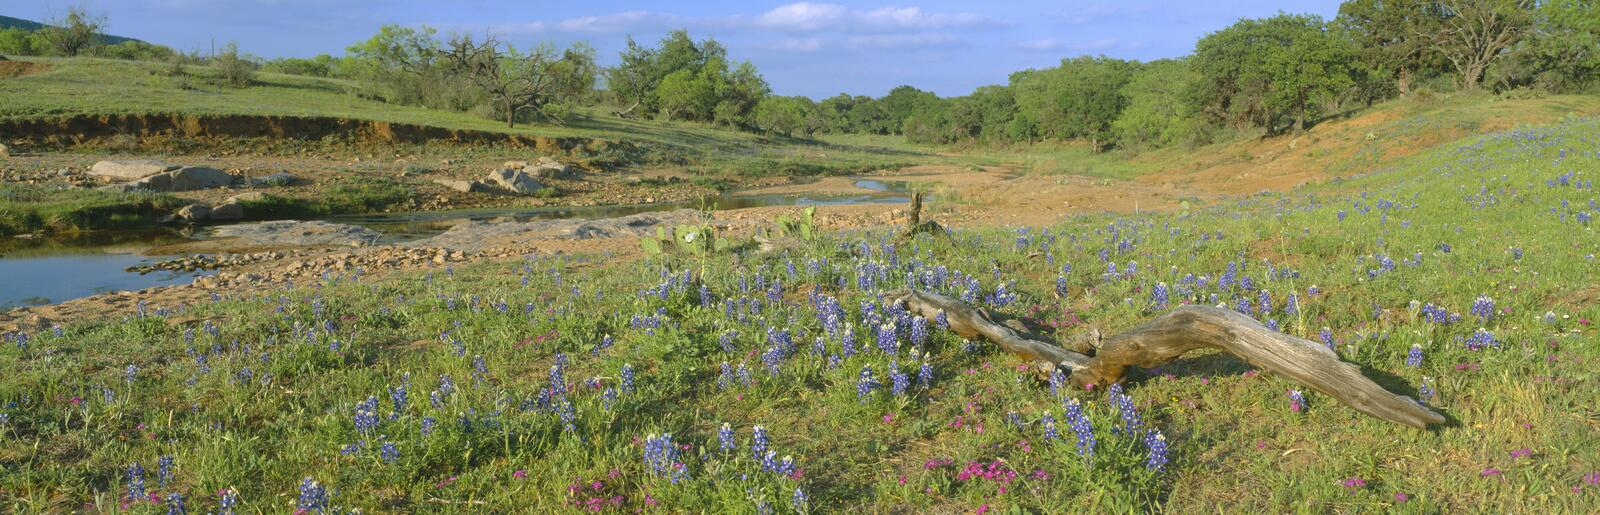 Blue bonnets in Hill Country royalty free stock photo